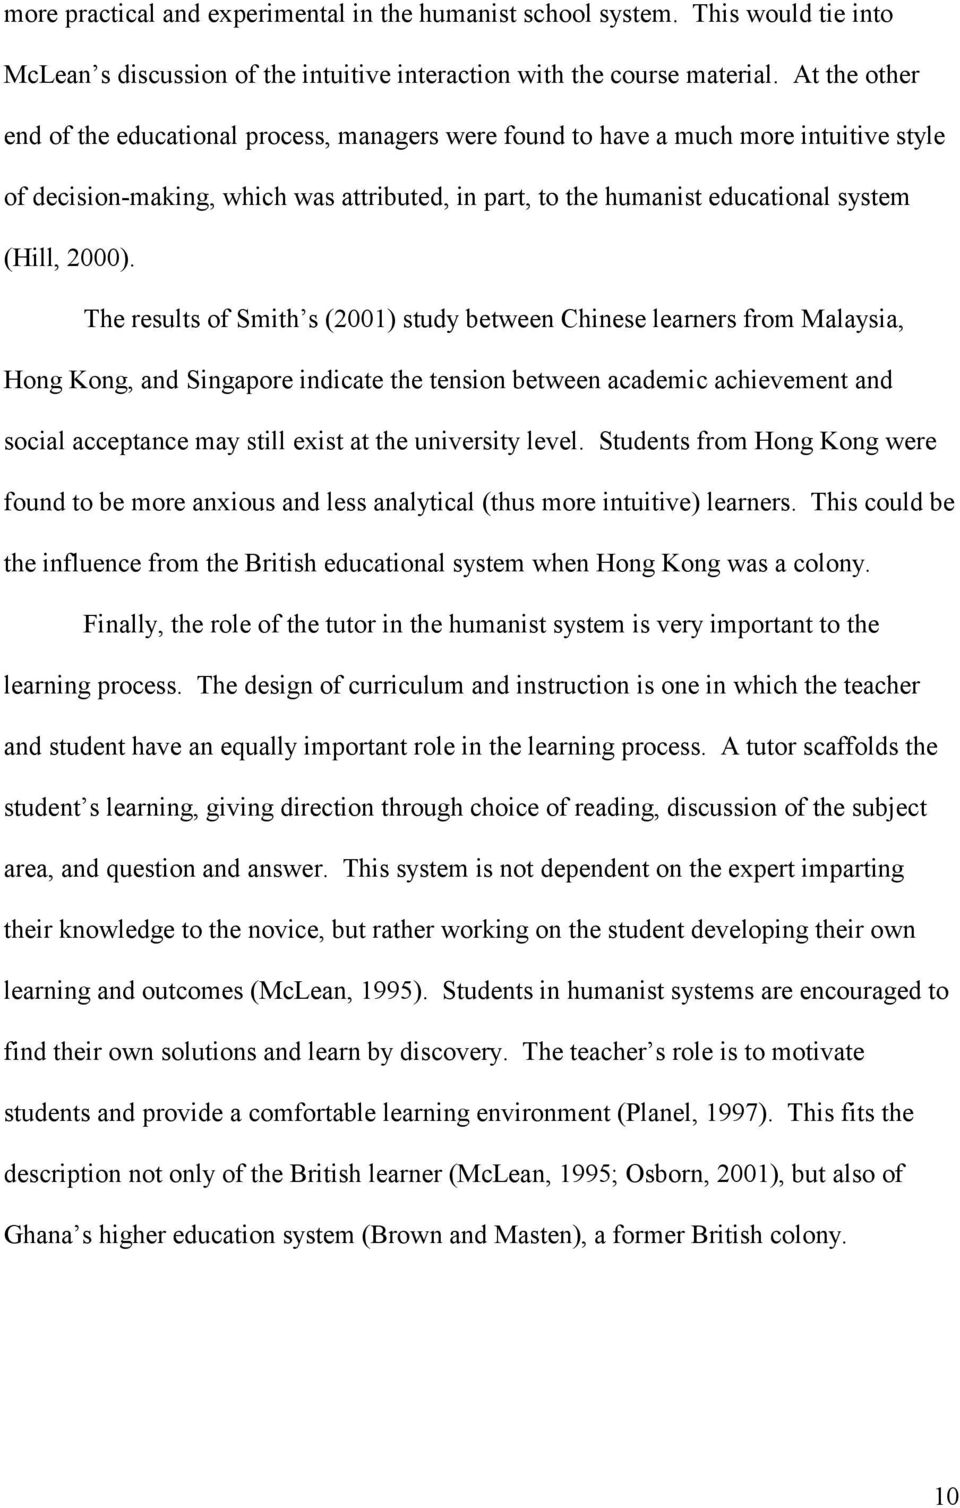 The results of Smith s (2001) study between Chinese learners from Malaysia, Hong Kong, and Singapore indicate the tension between academic achievement and social acceptance may still exist at the